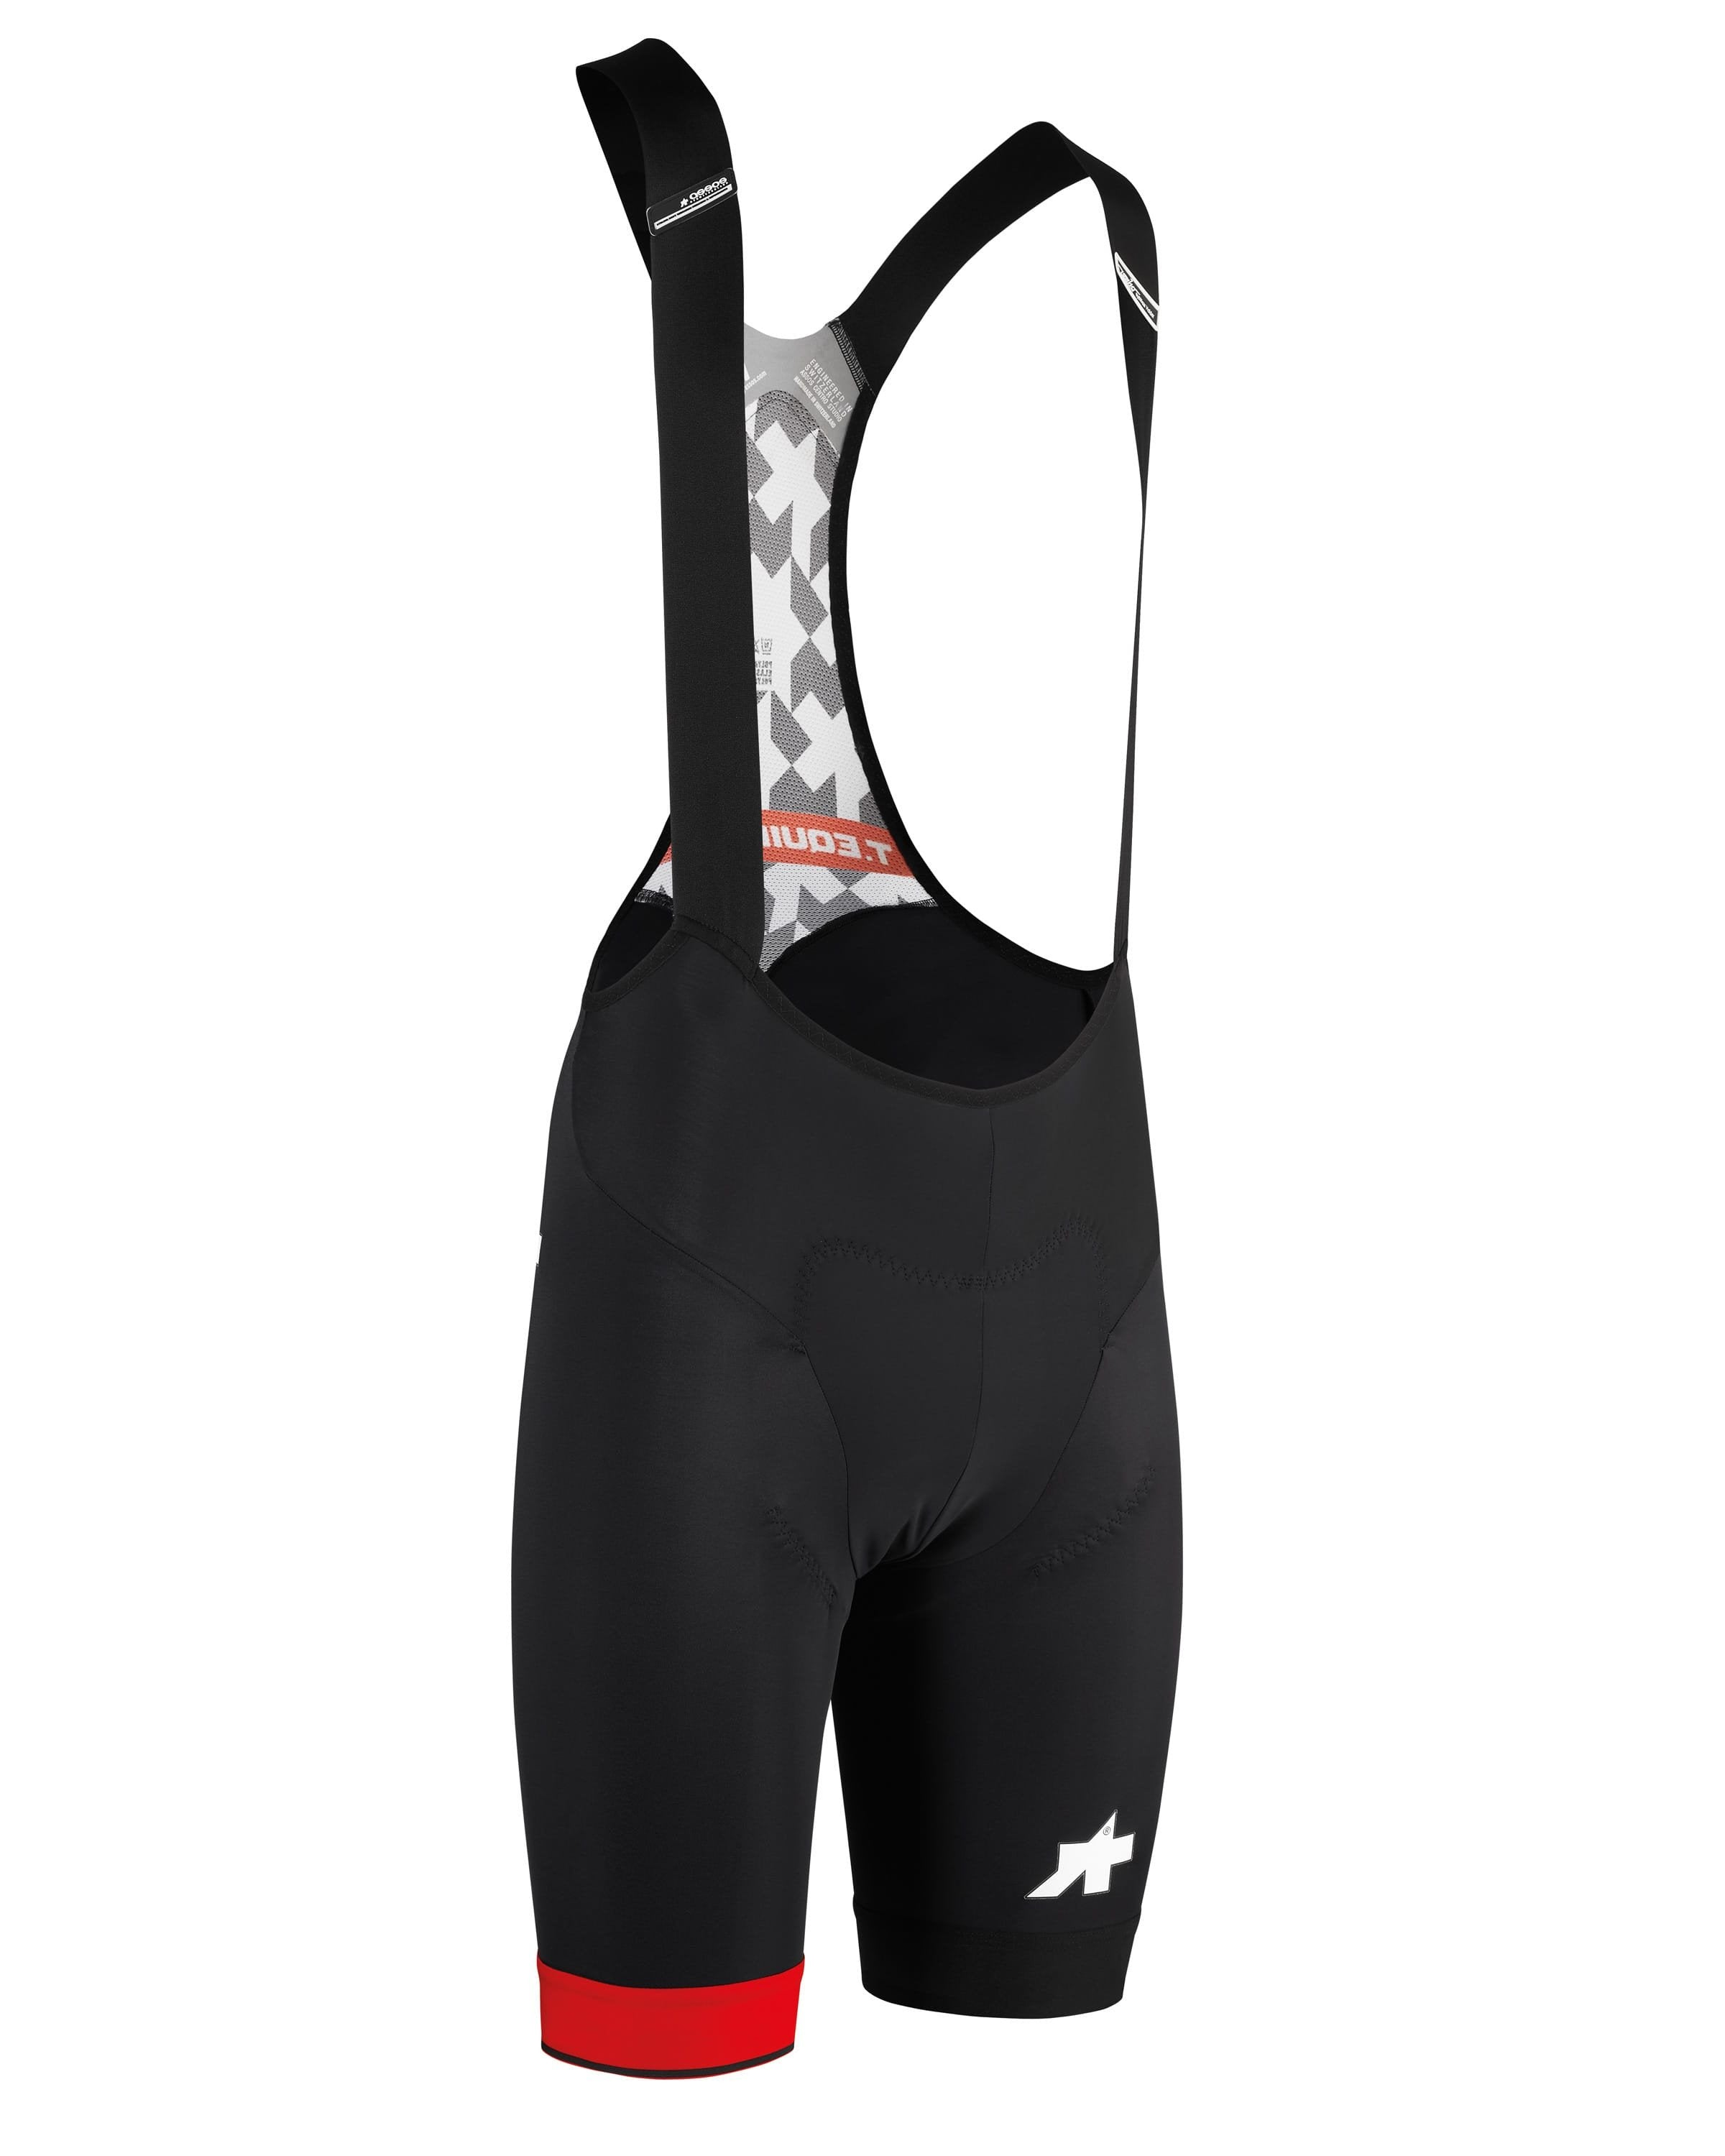 Assos T Equipe Evo Bib Shorts - National Red